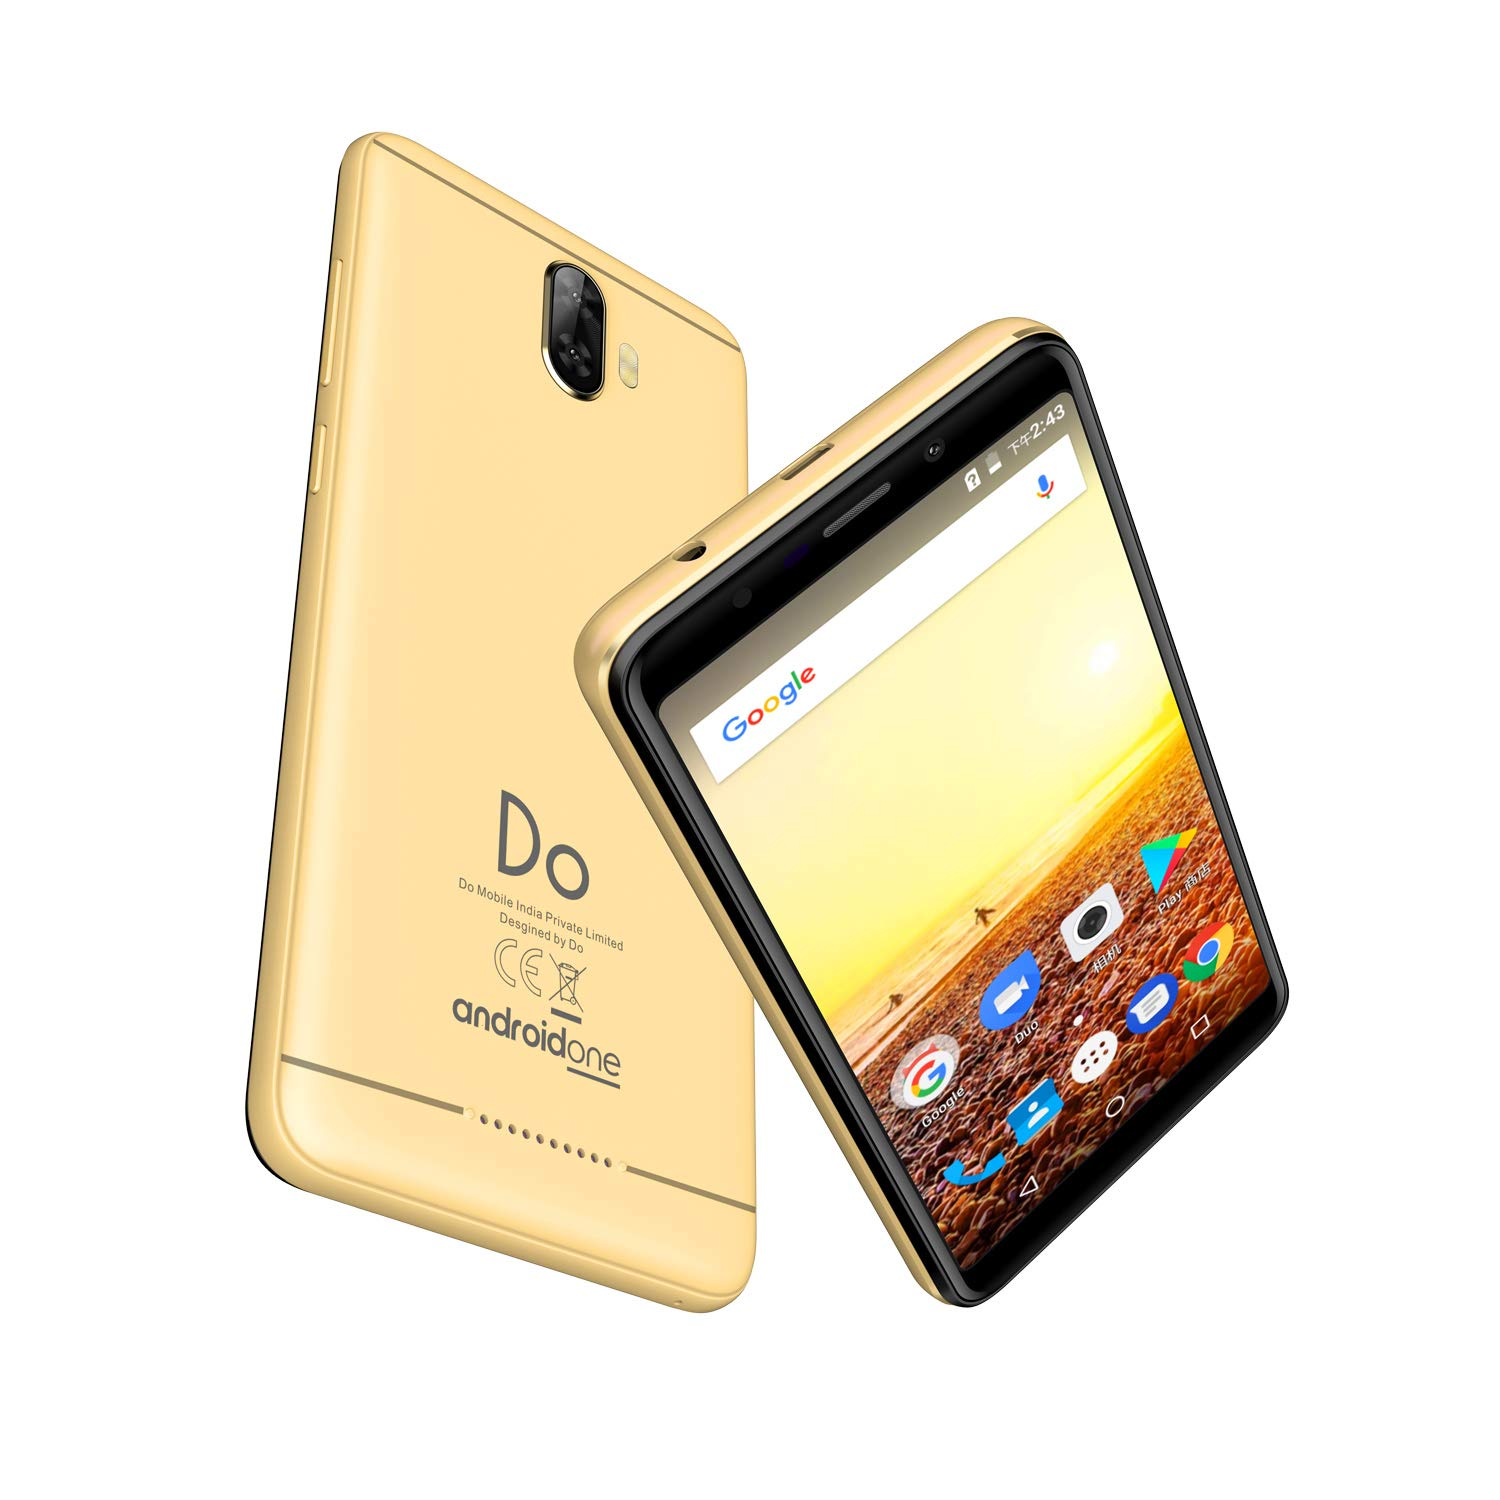 Do Mobile Mate-1 Dual Sim, Volte, Android, 4G Smartphone - (Gold)